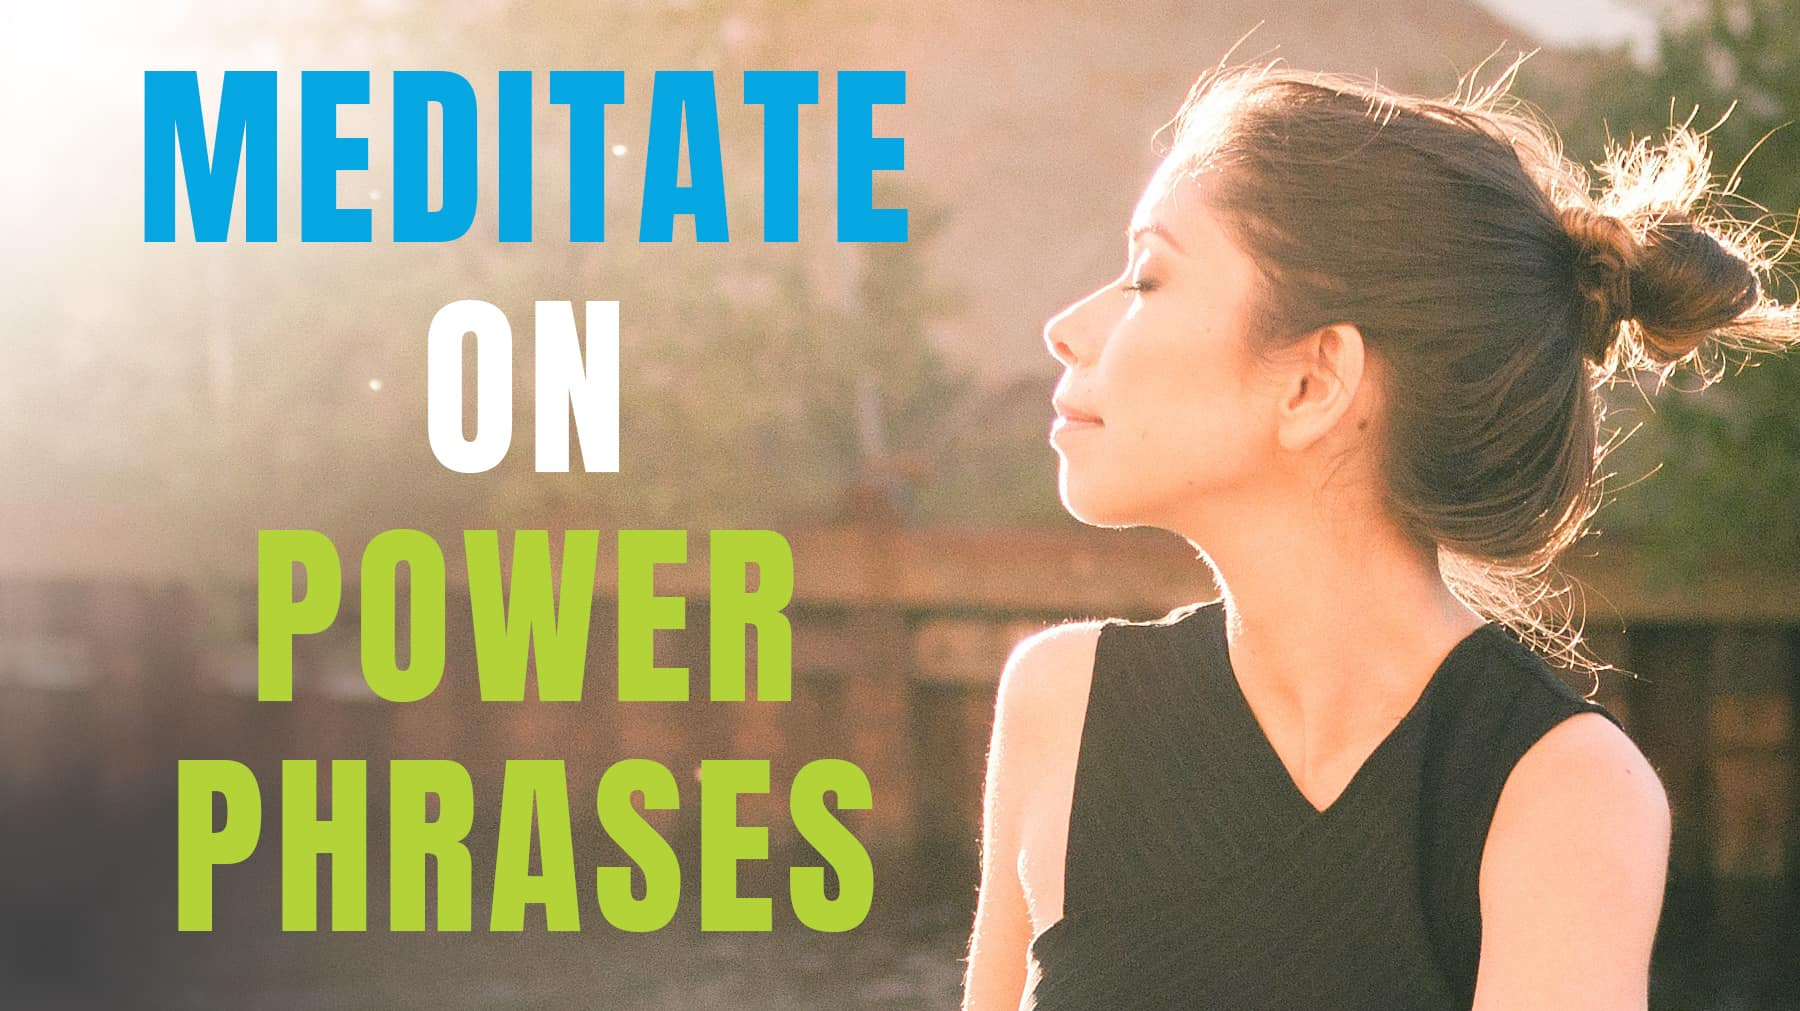 Meditate on power phrases